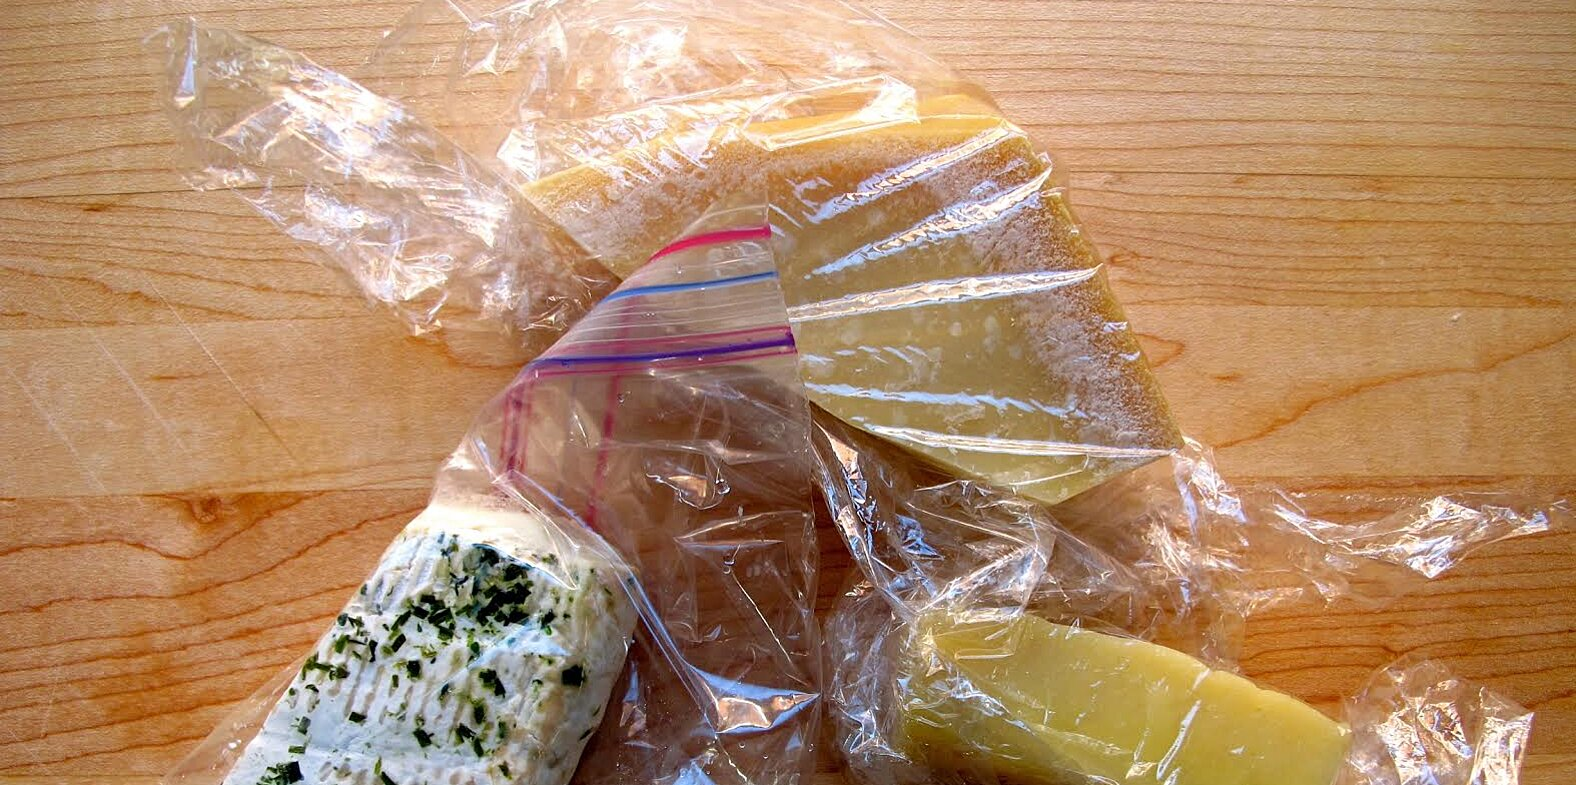 The Right Way to Wrap and Store Cheese